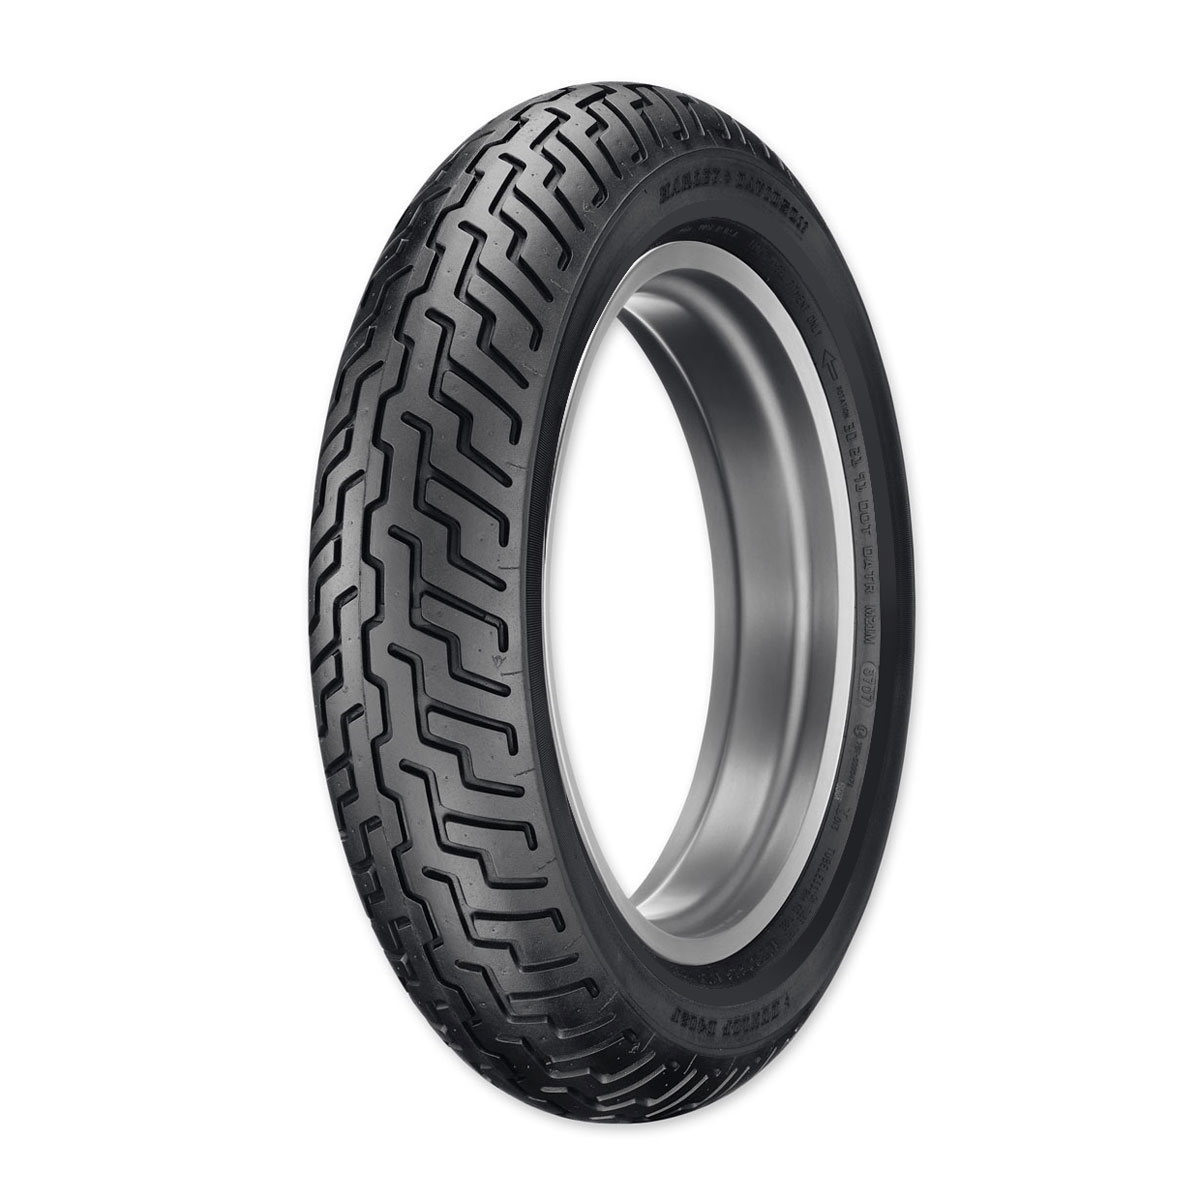 Motorcycle Tires Save Big On Jp Cycles Rocket Rims Plug Wiring Diagram Dunlop D402 Mt90b16 Front Tire